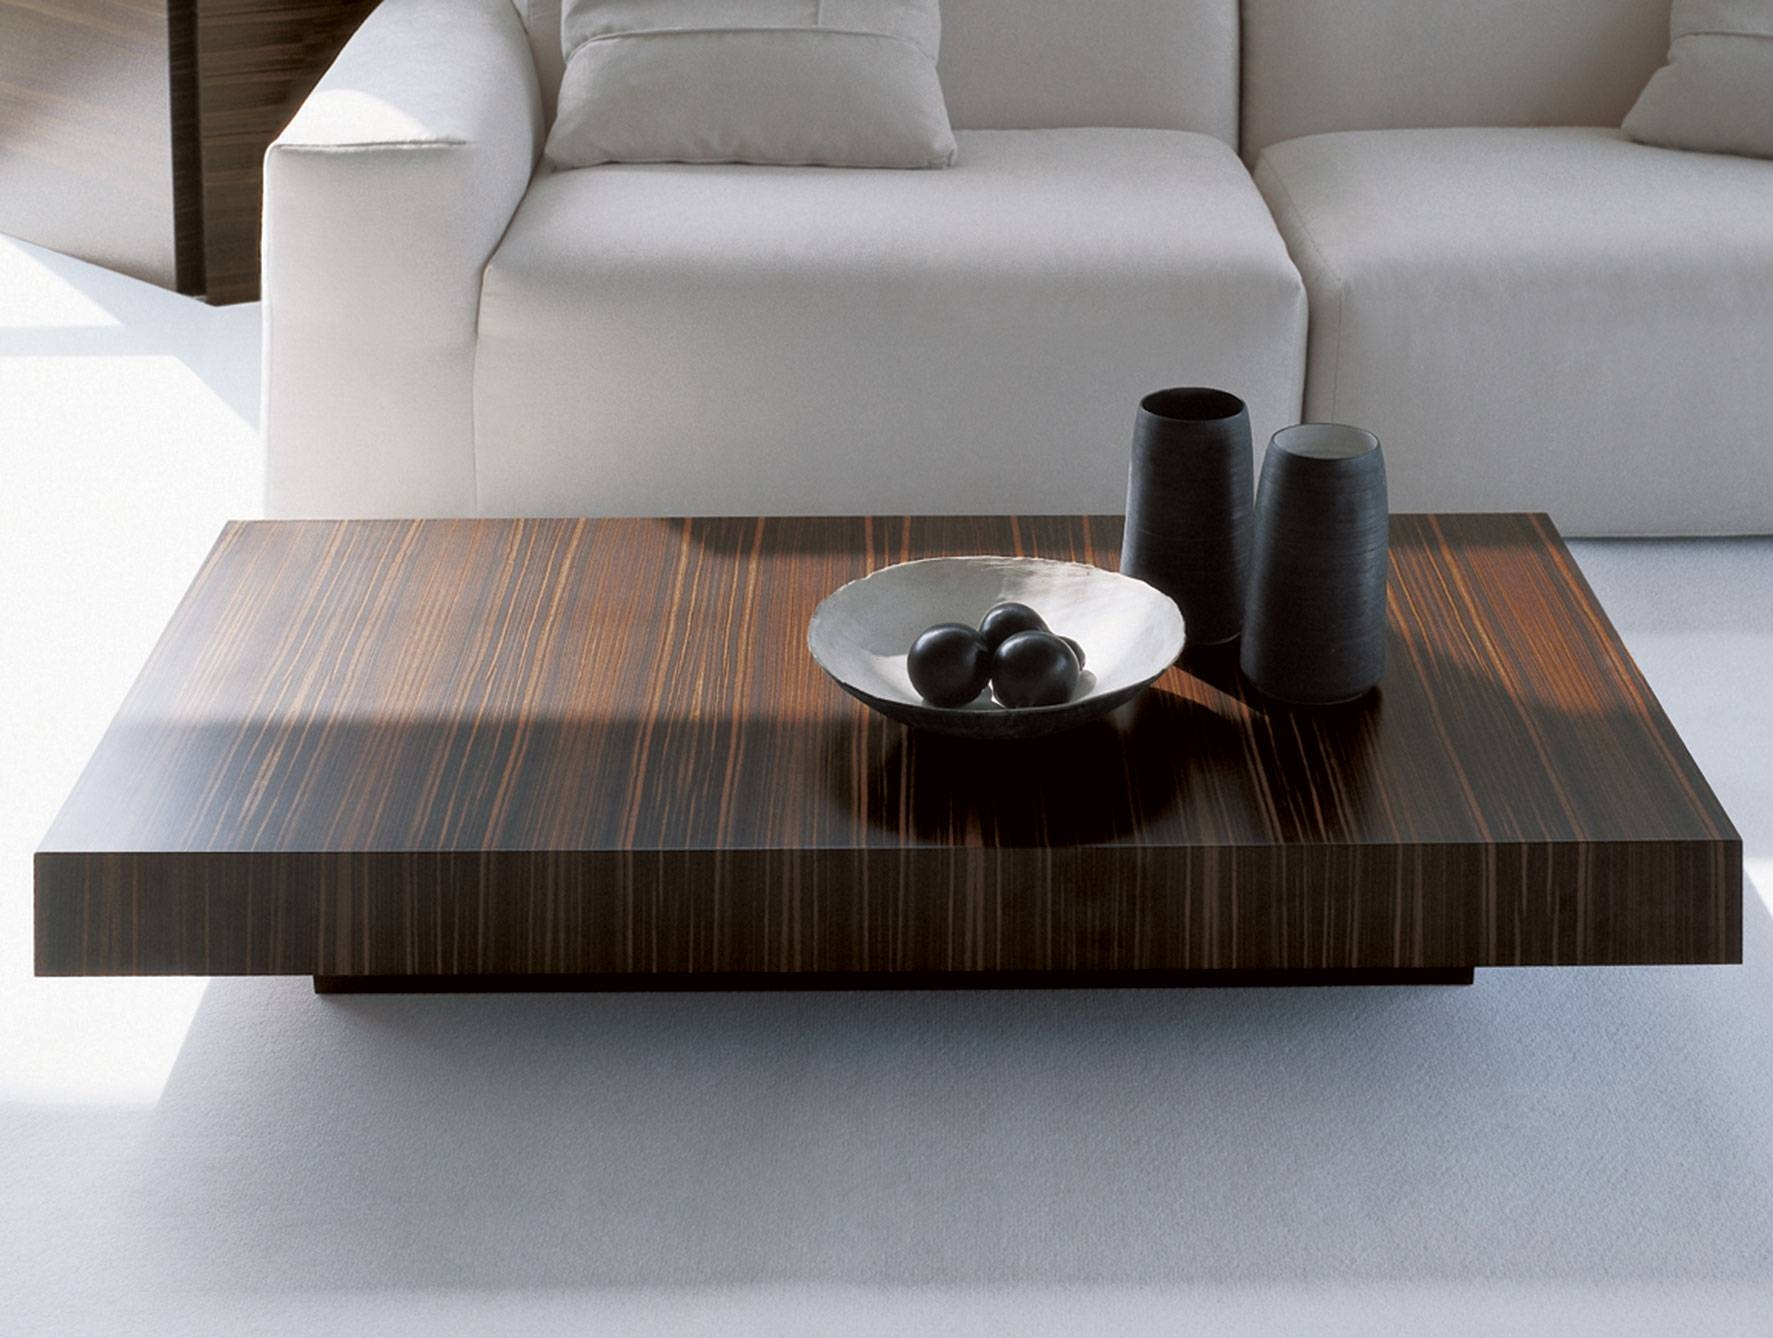 Modern Coffee Table: Amusing Best Modern Italian Coffee Tables within Italian Coffee Tables (Image 12 of 15)